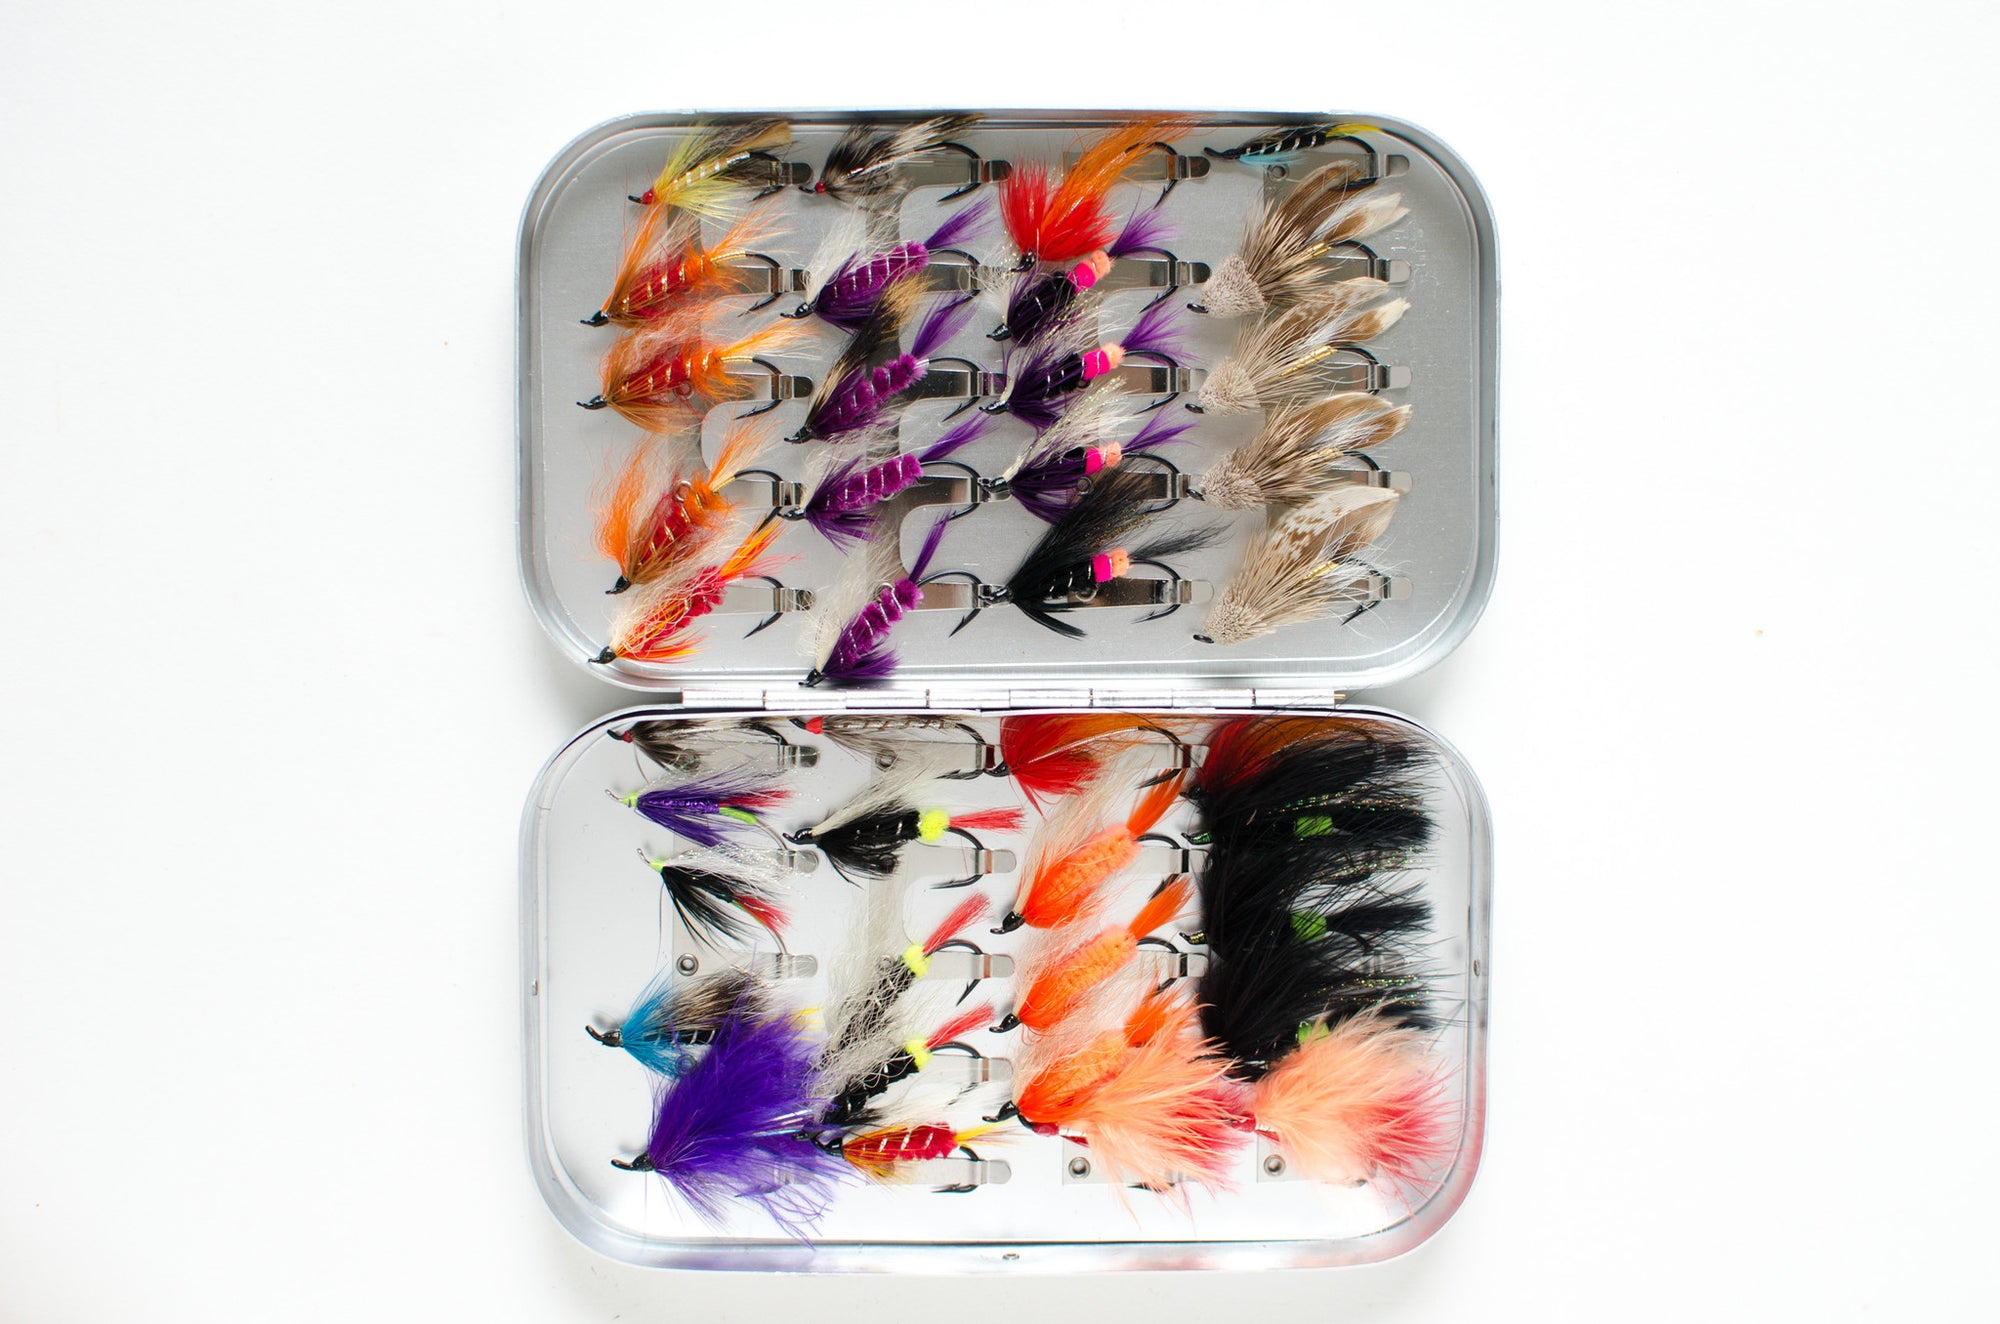 Wheatley Salmon Box with 40 flies